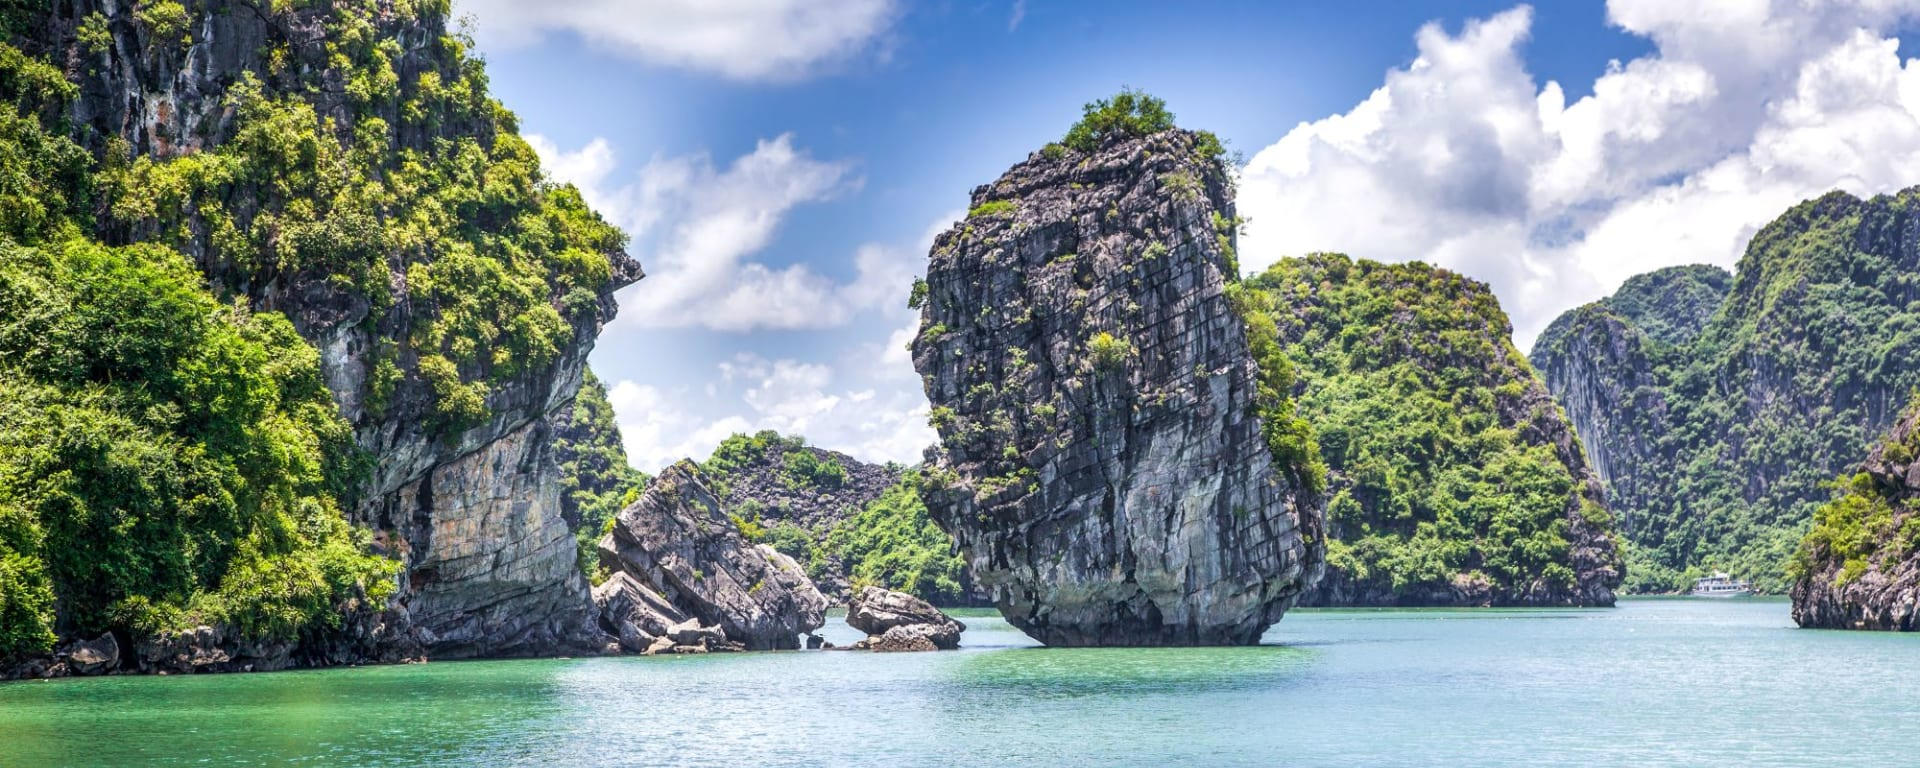 Grosse Indochina Reise ab Hanoi: Halong Bay cruising among beautiful limestone rocks and secluded beaches